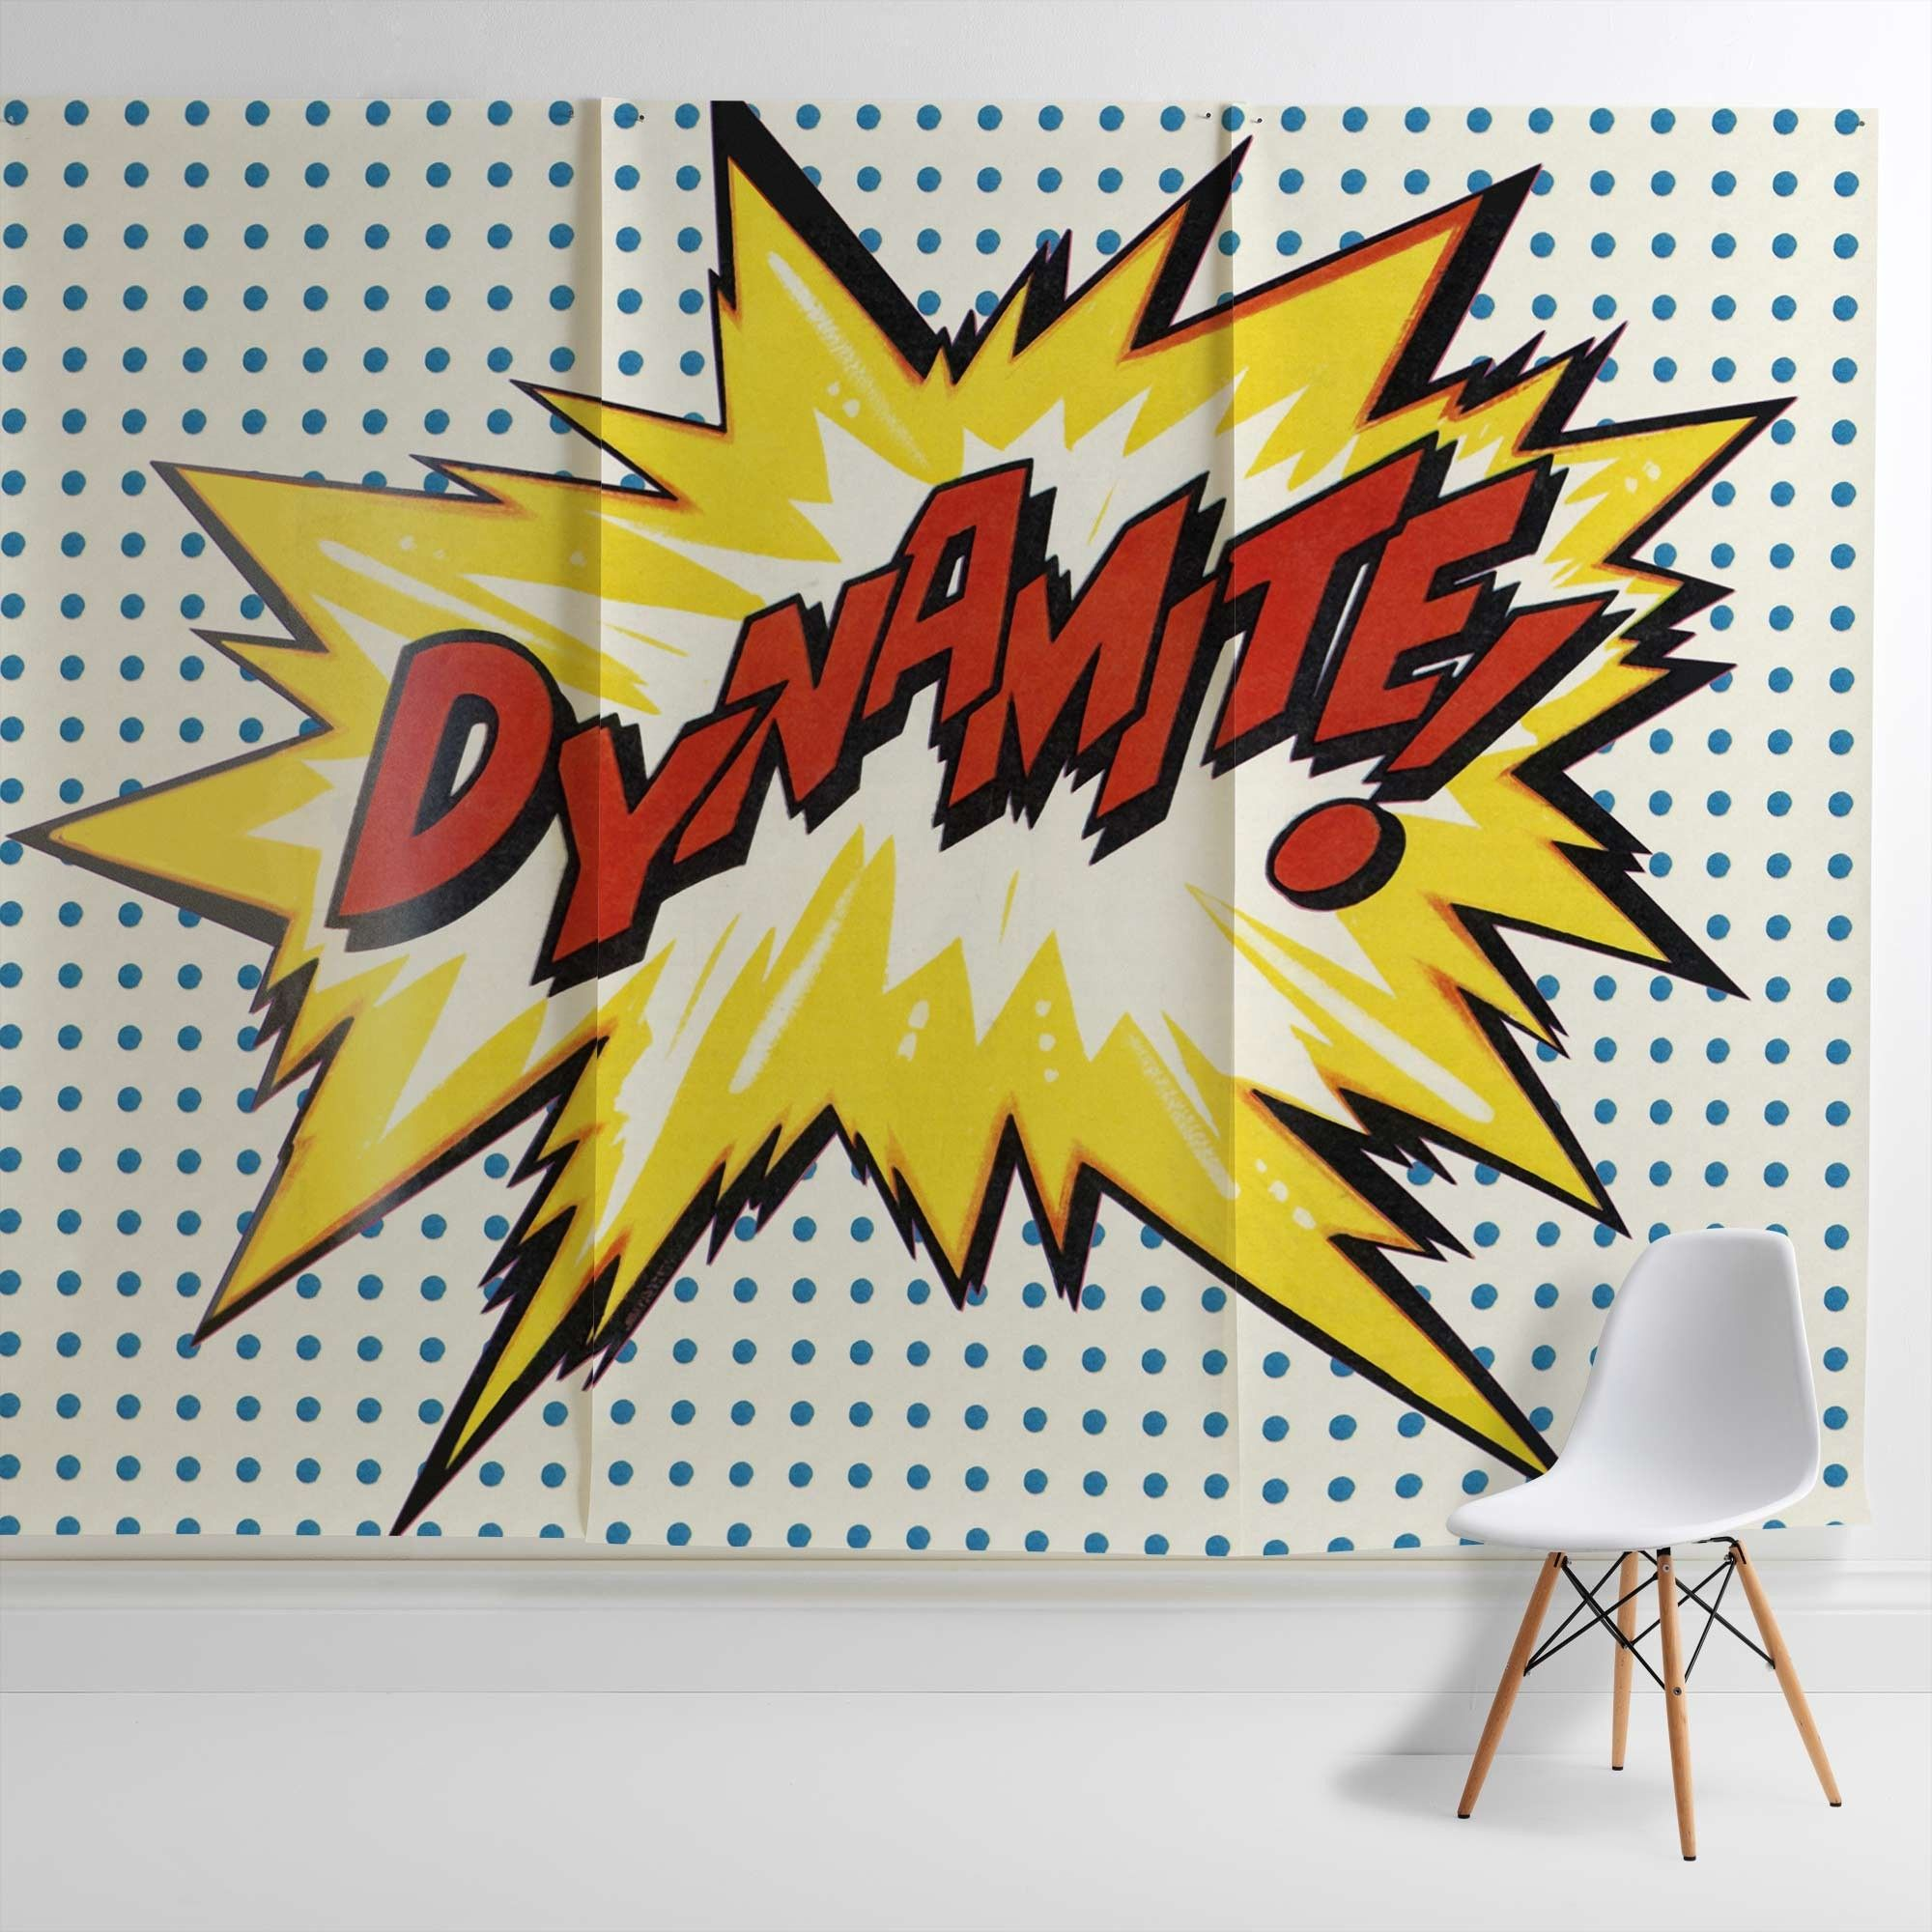 Dynamite Wall Mural from Surface View | i love retro | Wallpaper ...